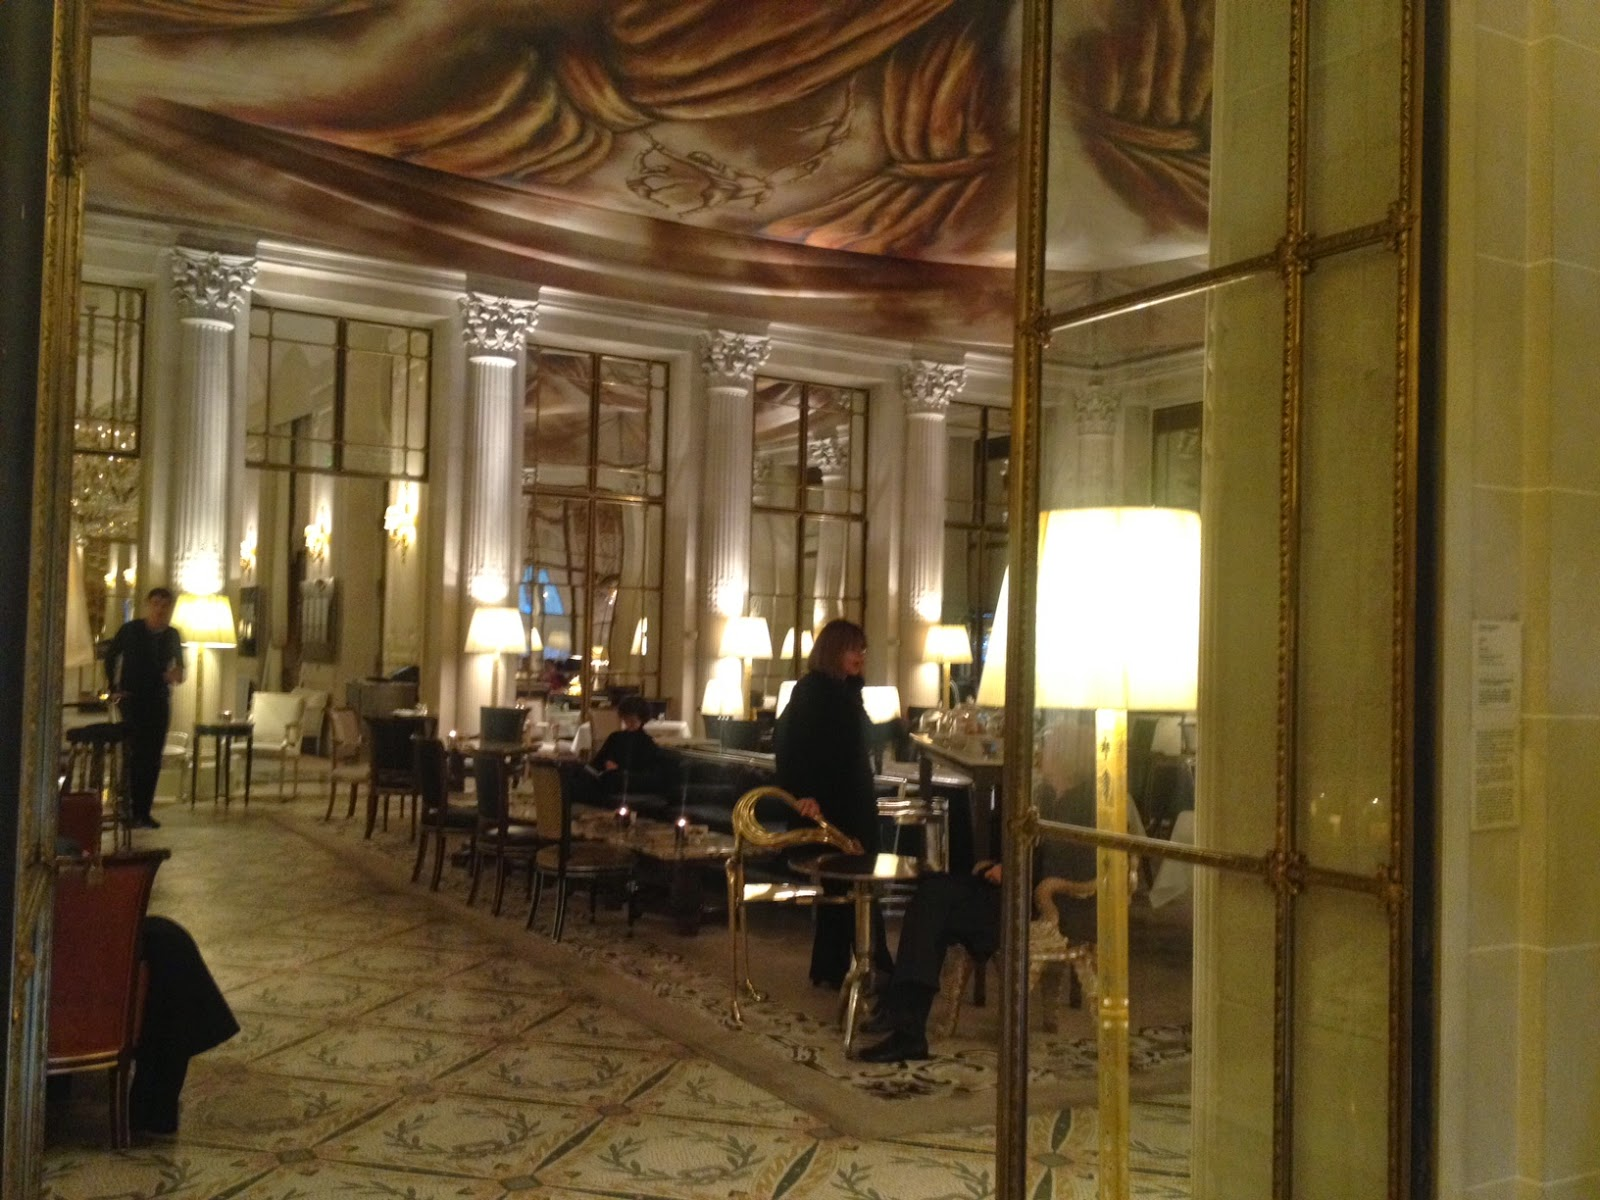 View of Le Dali at Le Meurice hotel in Paris